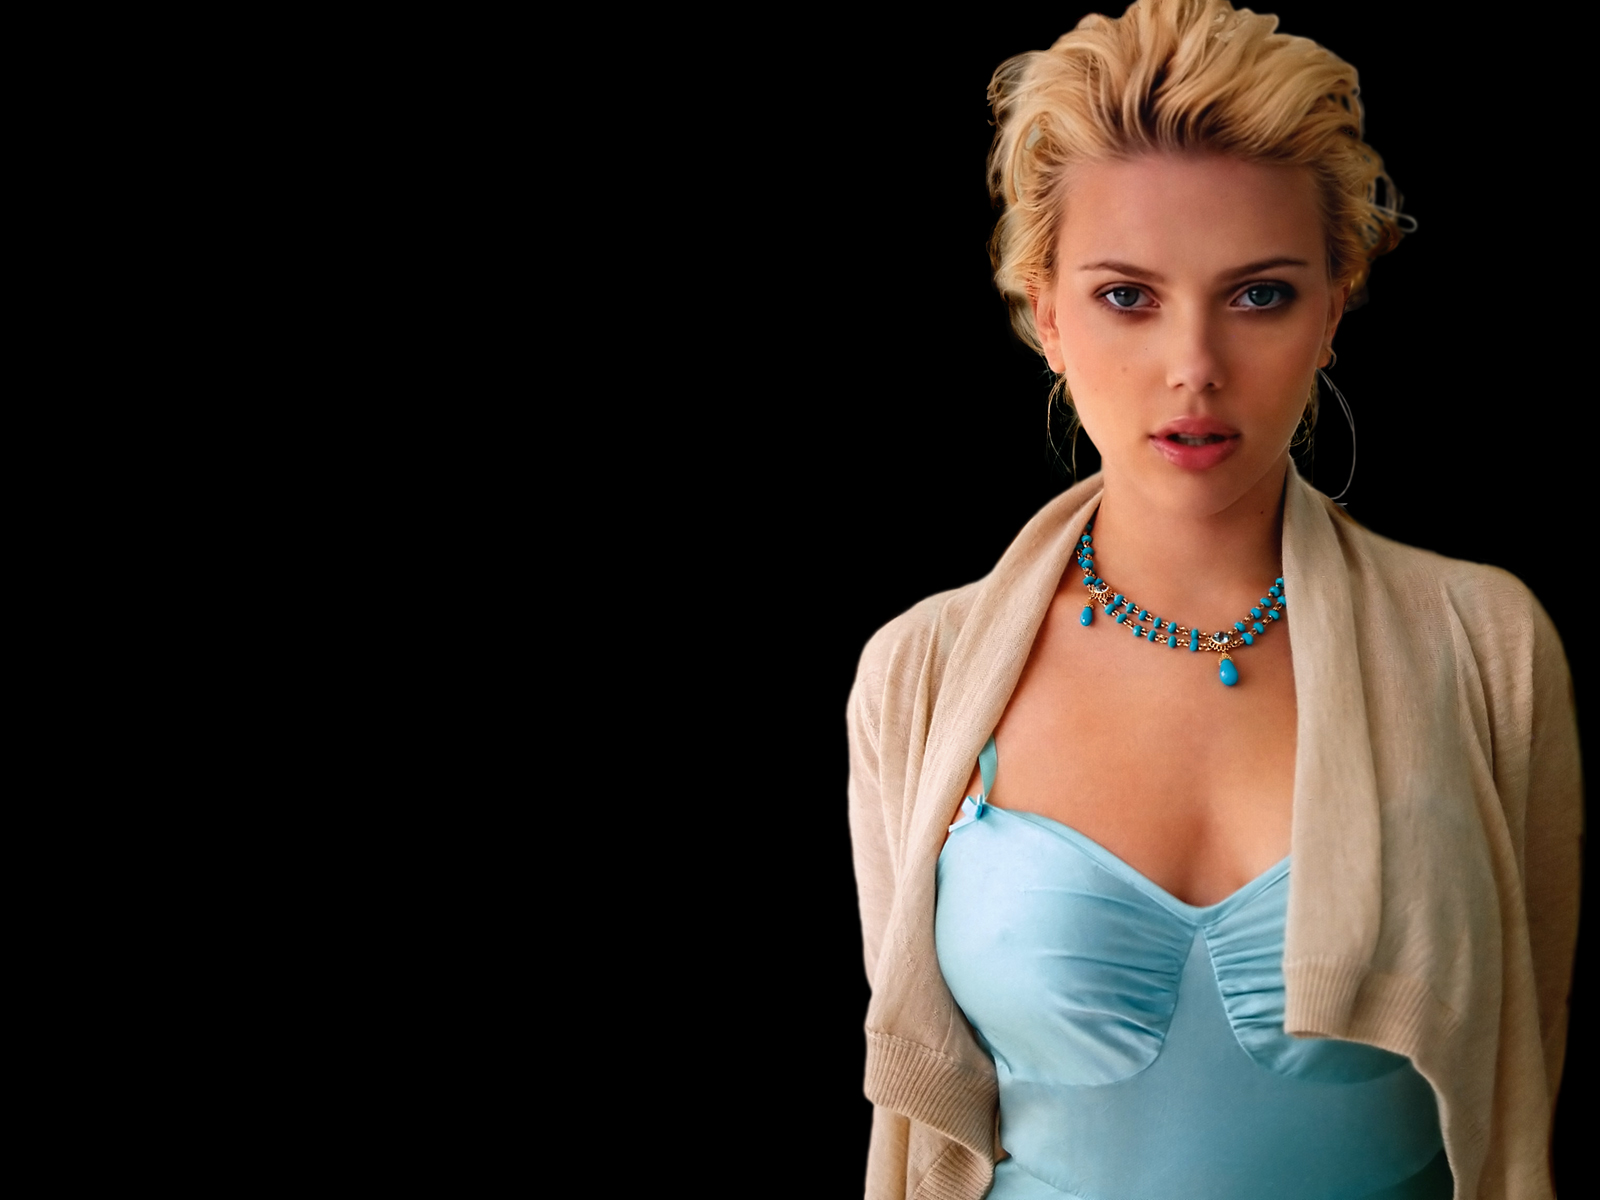 Scarlett Johansson Wallpaper: HD Wallpapers: Gorgeous SCARLETT JOHANSSON Super Hot & HD